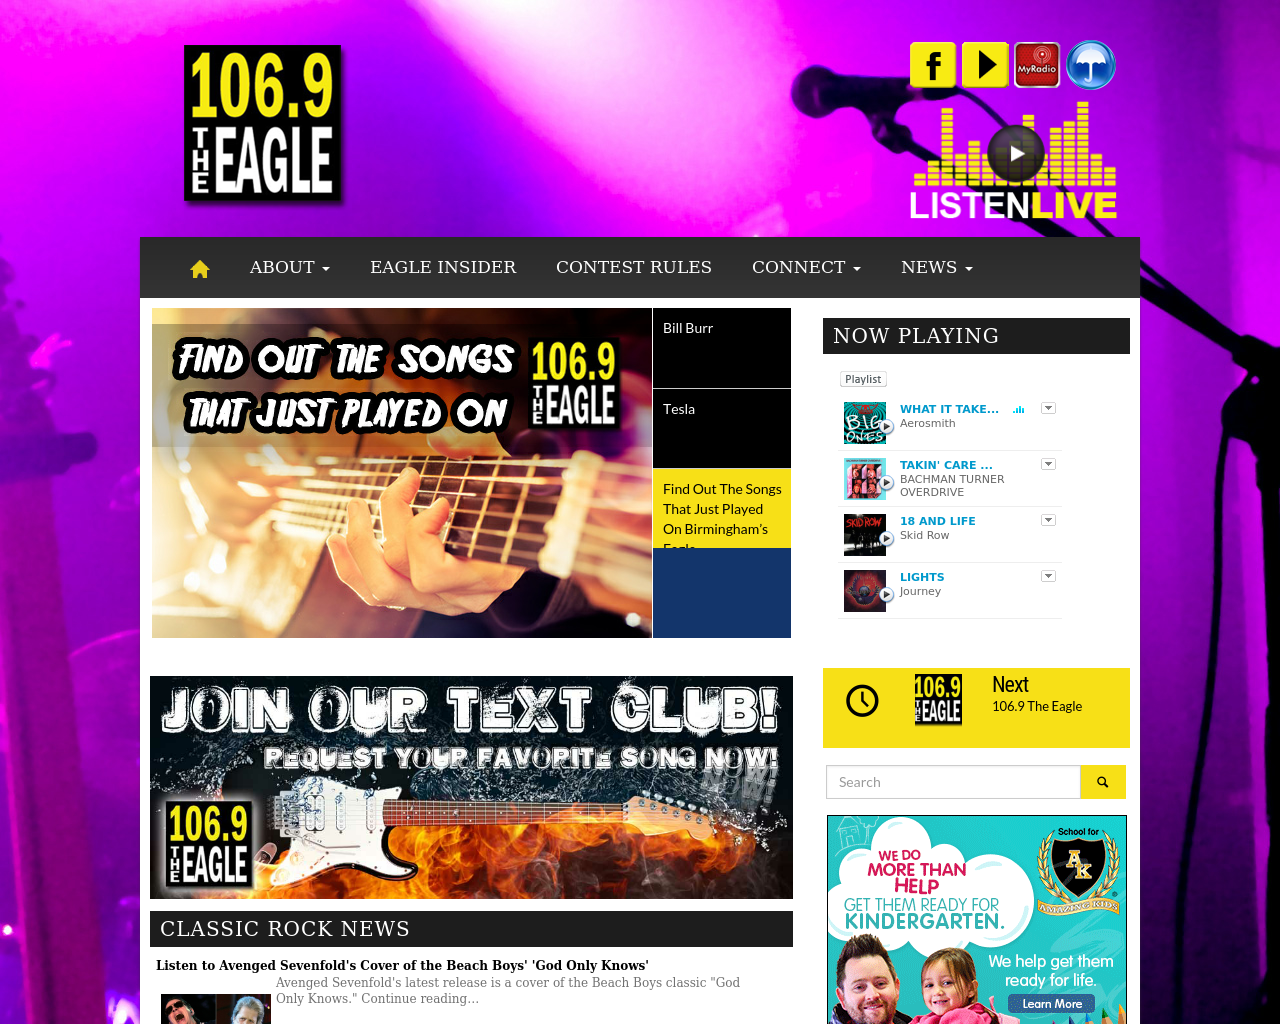 106.9-The-Eagle-Advertising-Reviews-Pricing